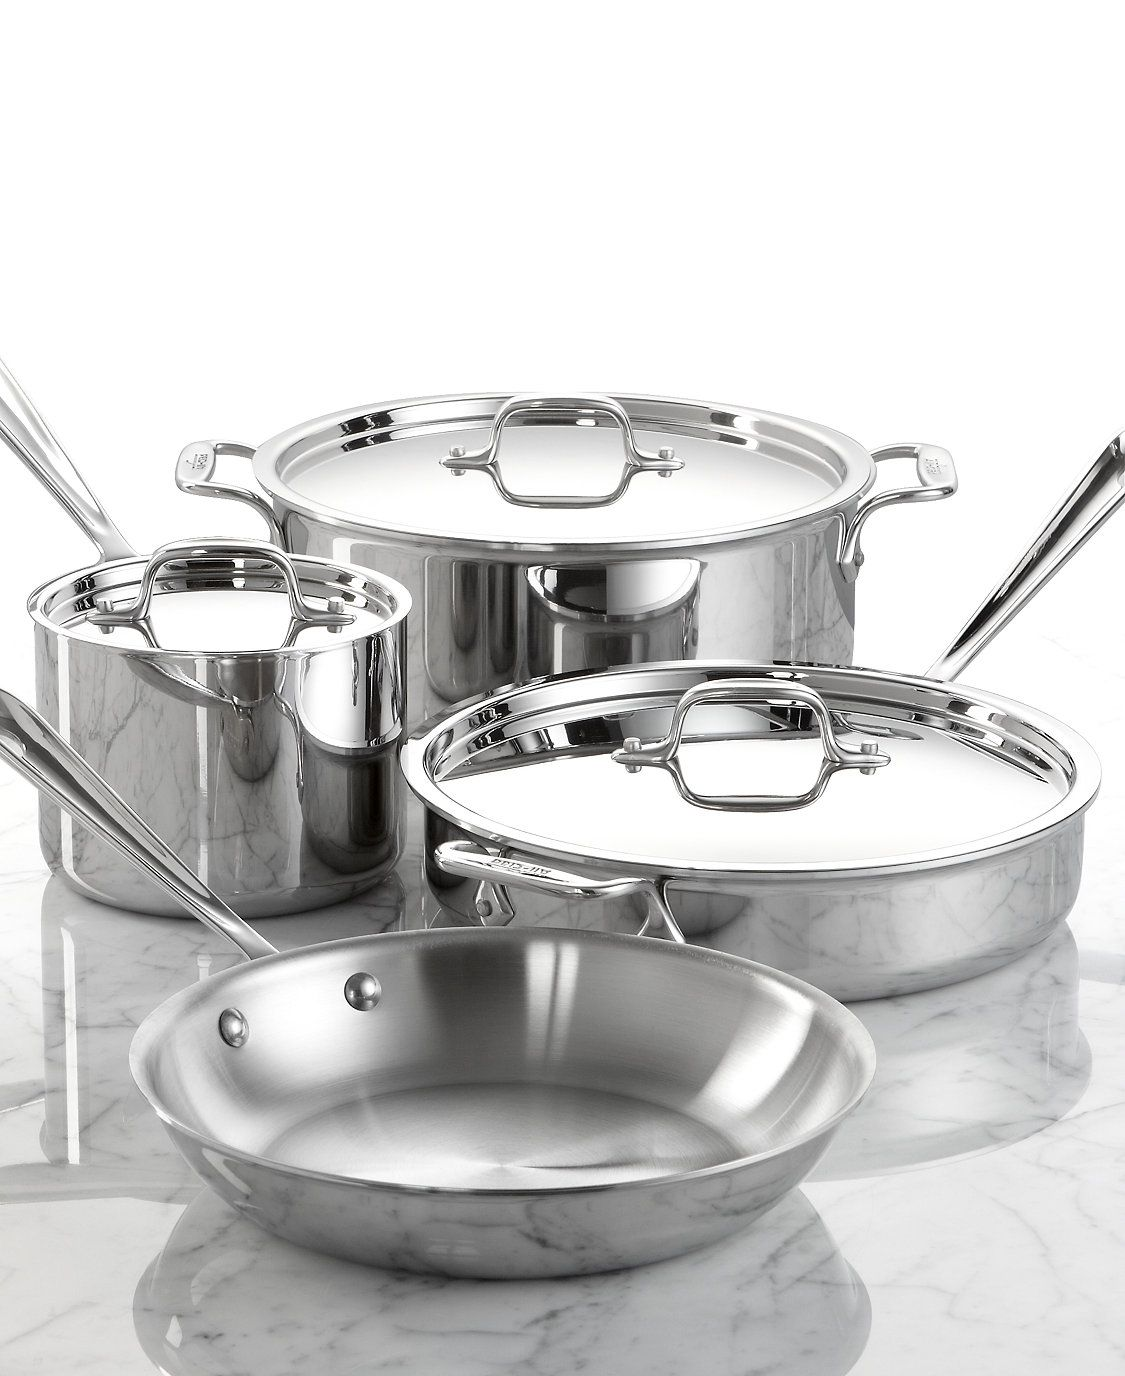 All Clad Stainless Steel 7 Pc Cookware Set Created For Macy S Reviews Cookware Sets Macy S Cookware Set Stainless Steel Cookware Induction Cookware All clad 7 piece set